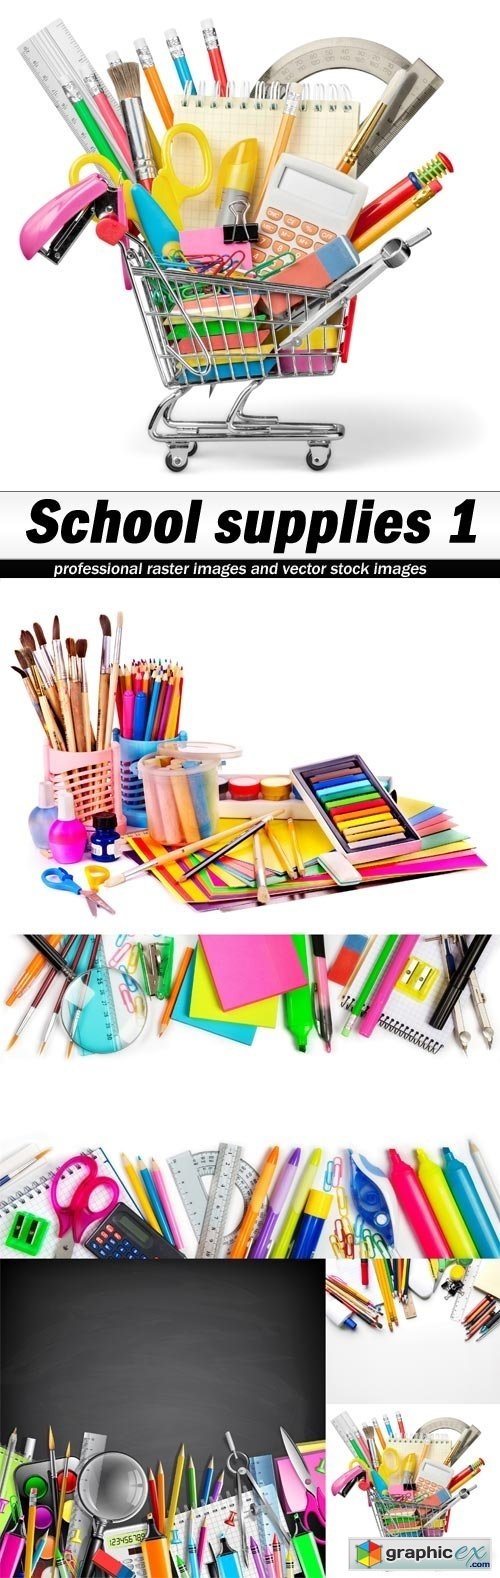 School supplies 1 - 5 UHQ JPEG